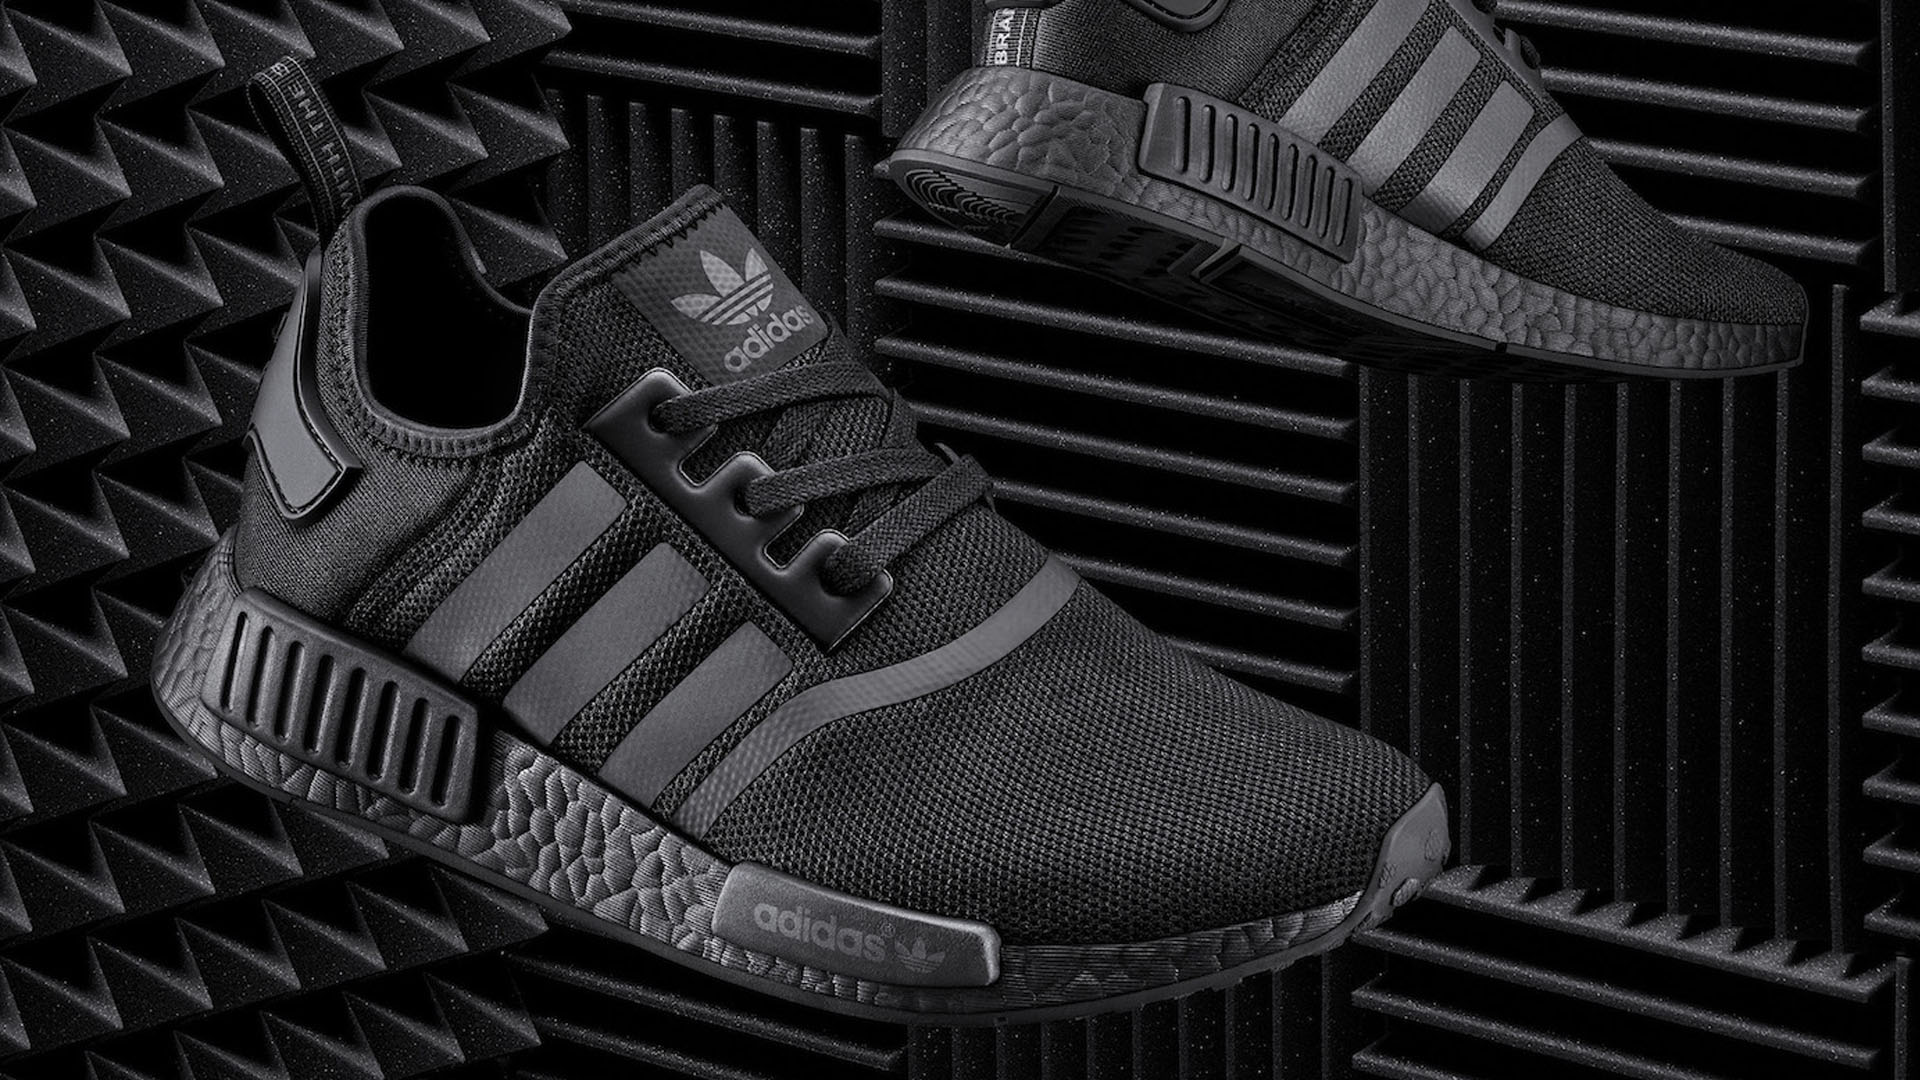 ADIDAS ORIGINALS NMD COLOUR BOOST IS SET TO BE RELEASED THIS